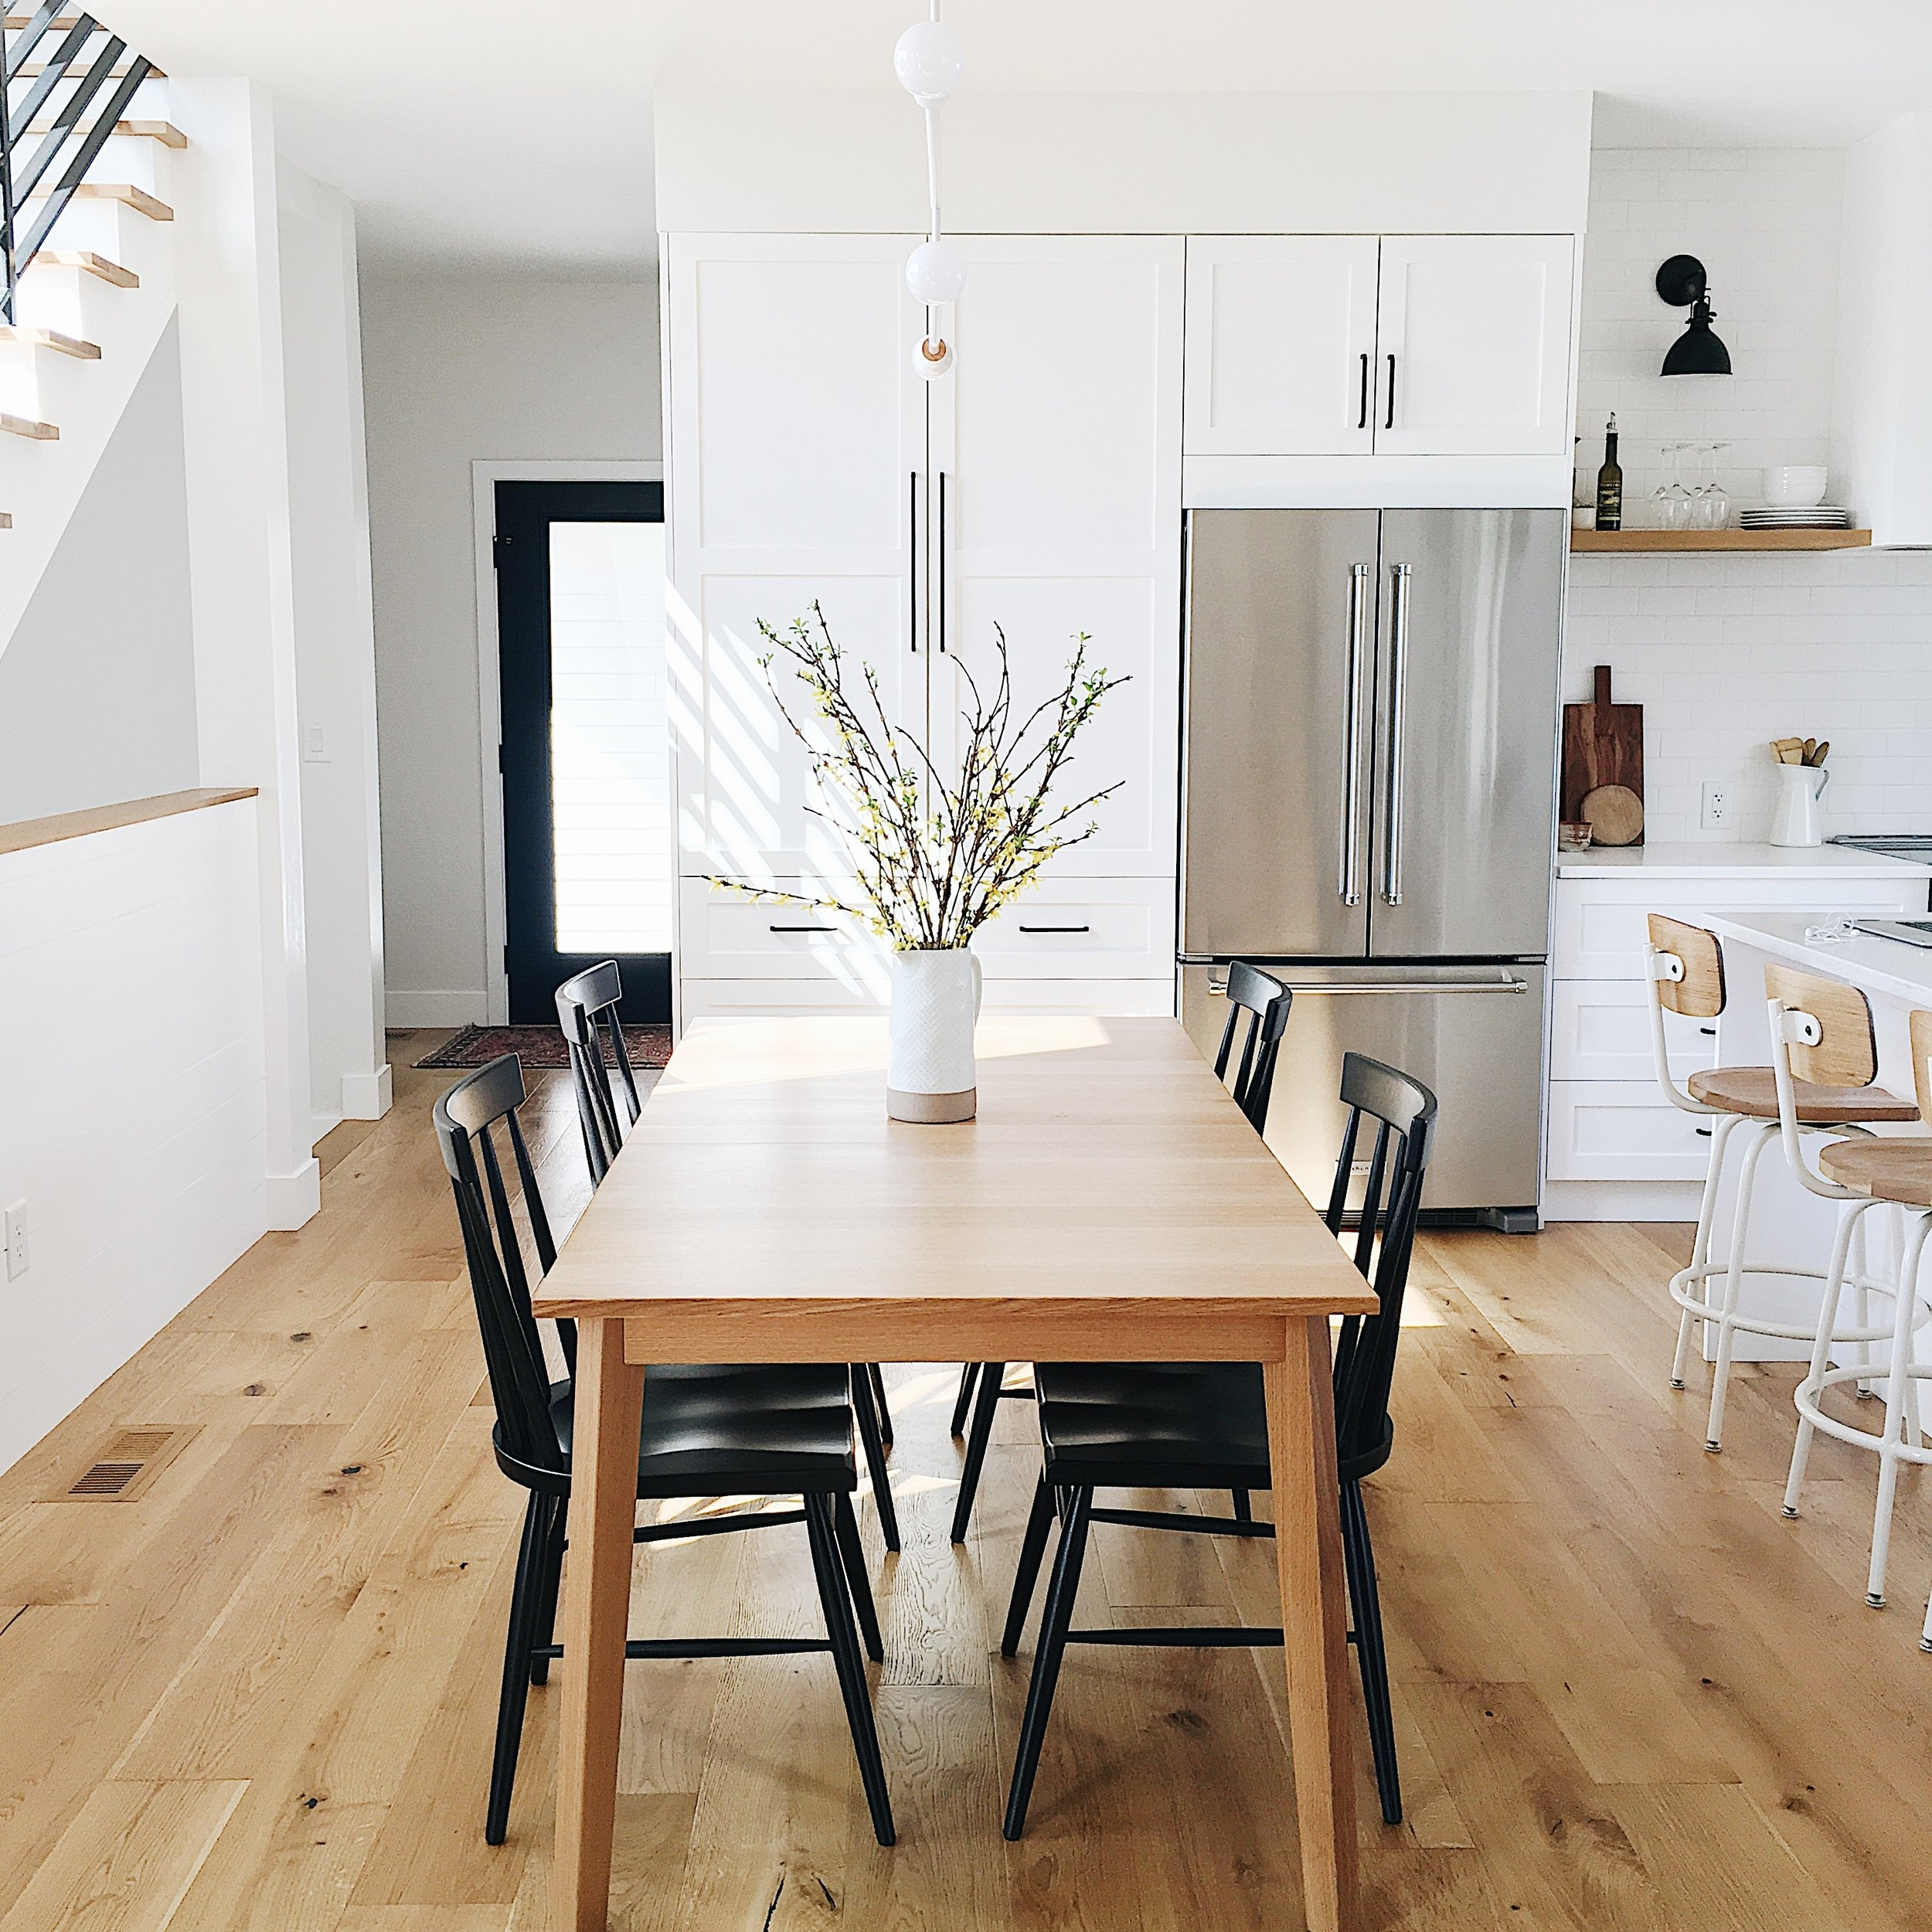 d i n i n g - The dining room is essentially an extension of the kitchen and living room, making it a very transitional space that is perfect for daily use as well as larger gatherings in which the table can be expanded to fit at least 10 guests.